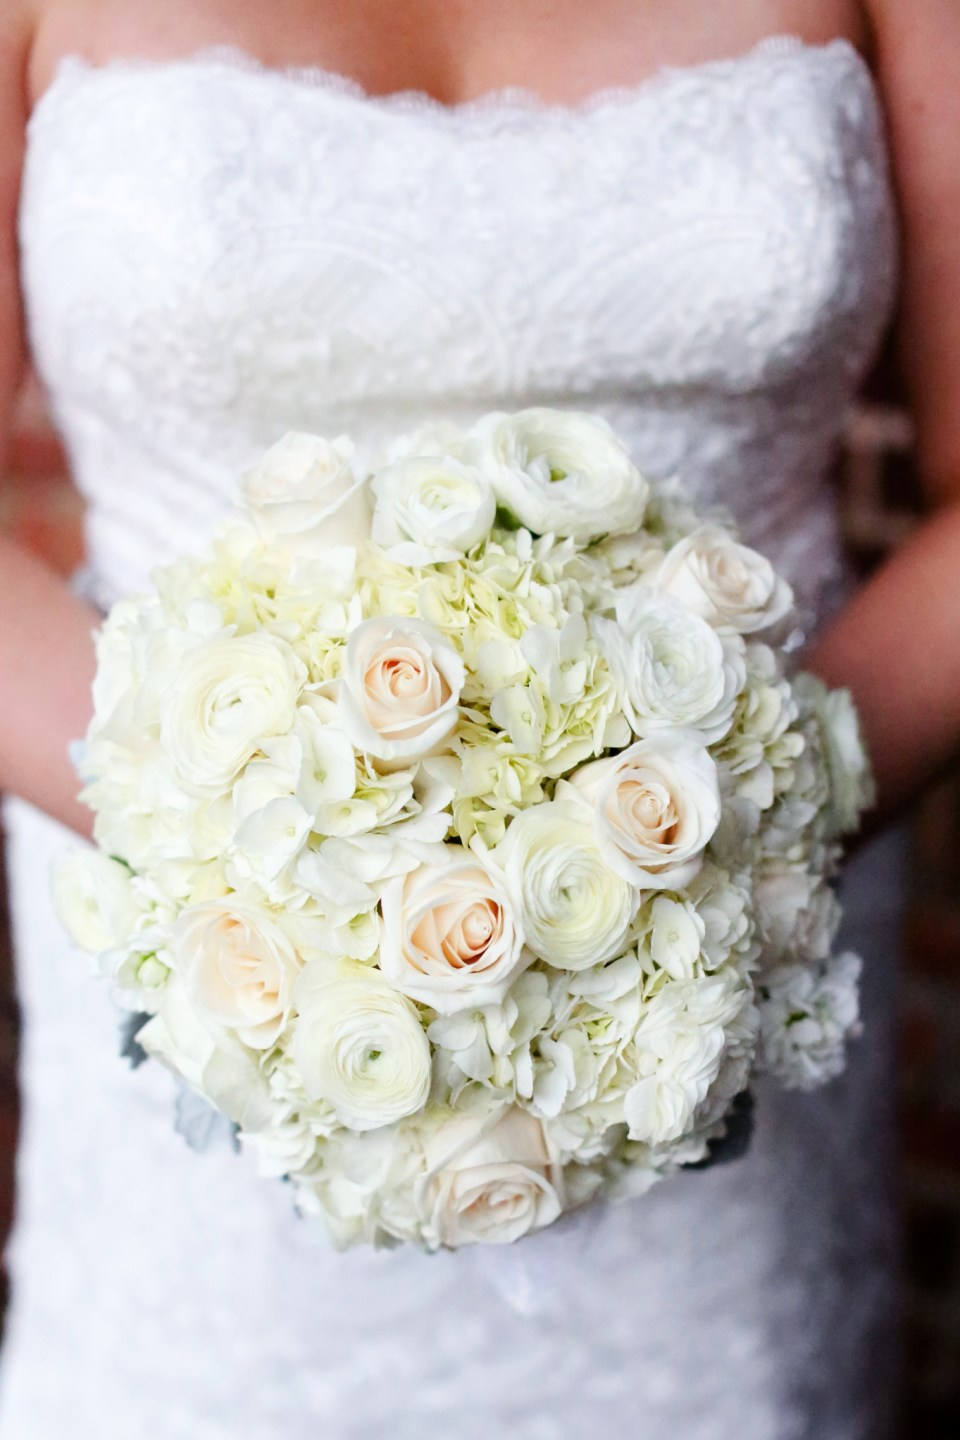 Winter-Wedding-Bouquet-Inspiration-Flowers-Bridal-Bridesmaids431